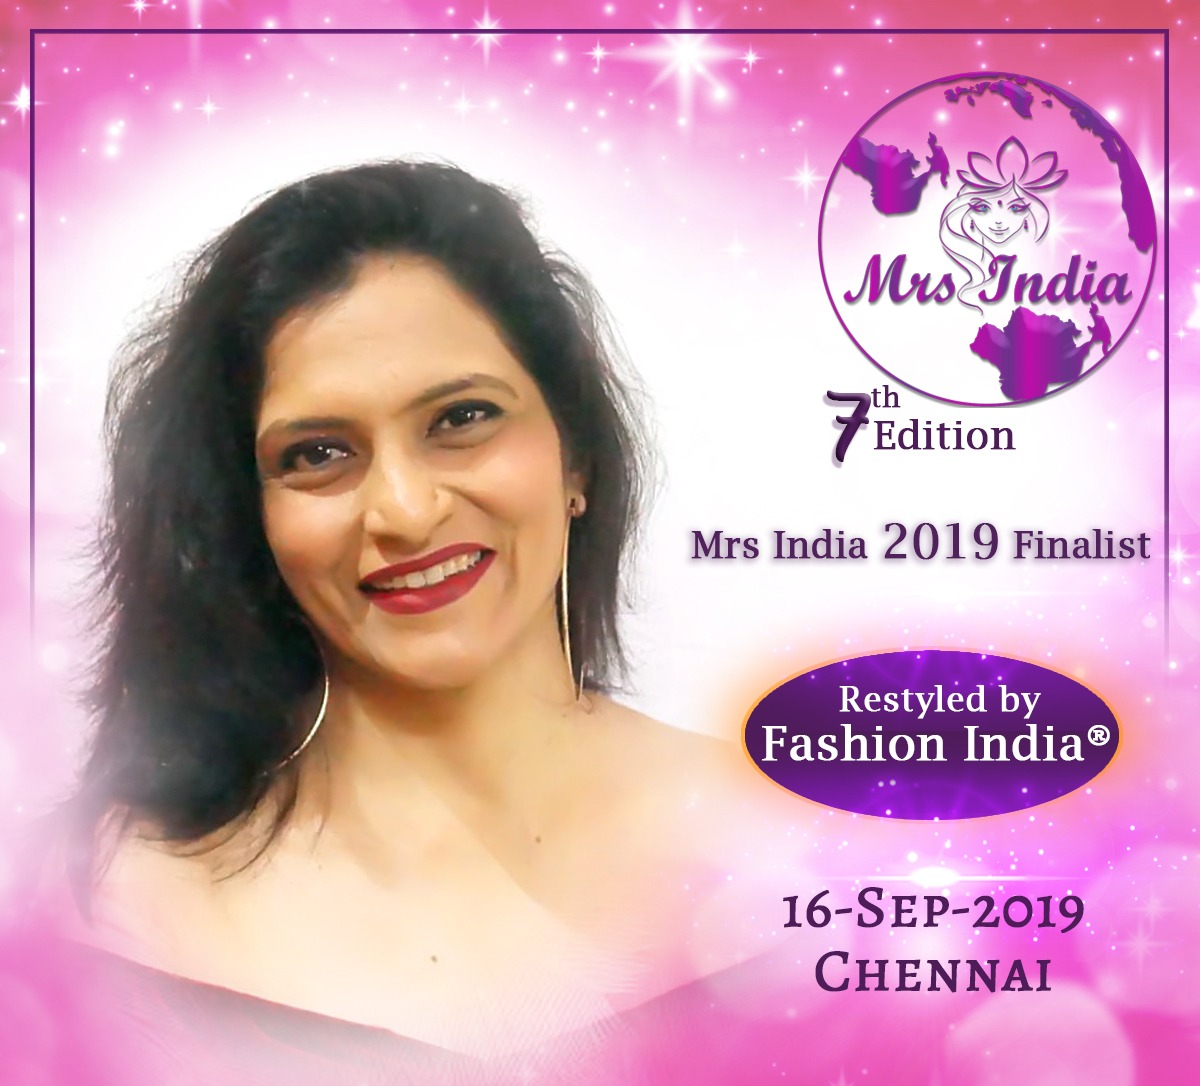 Mrs India 2020 2122 23 Winner Finalist